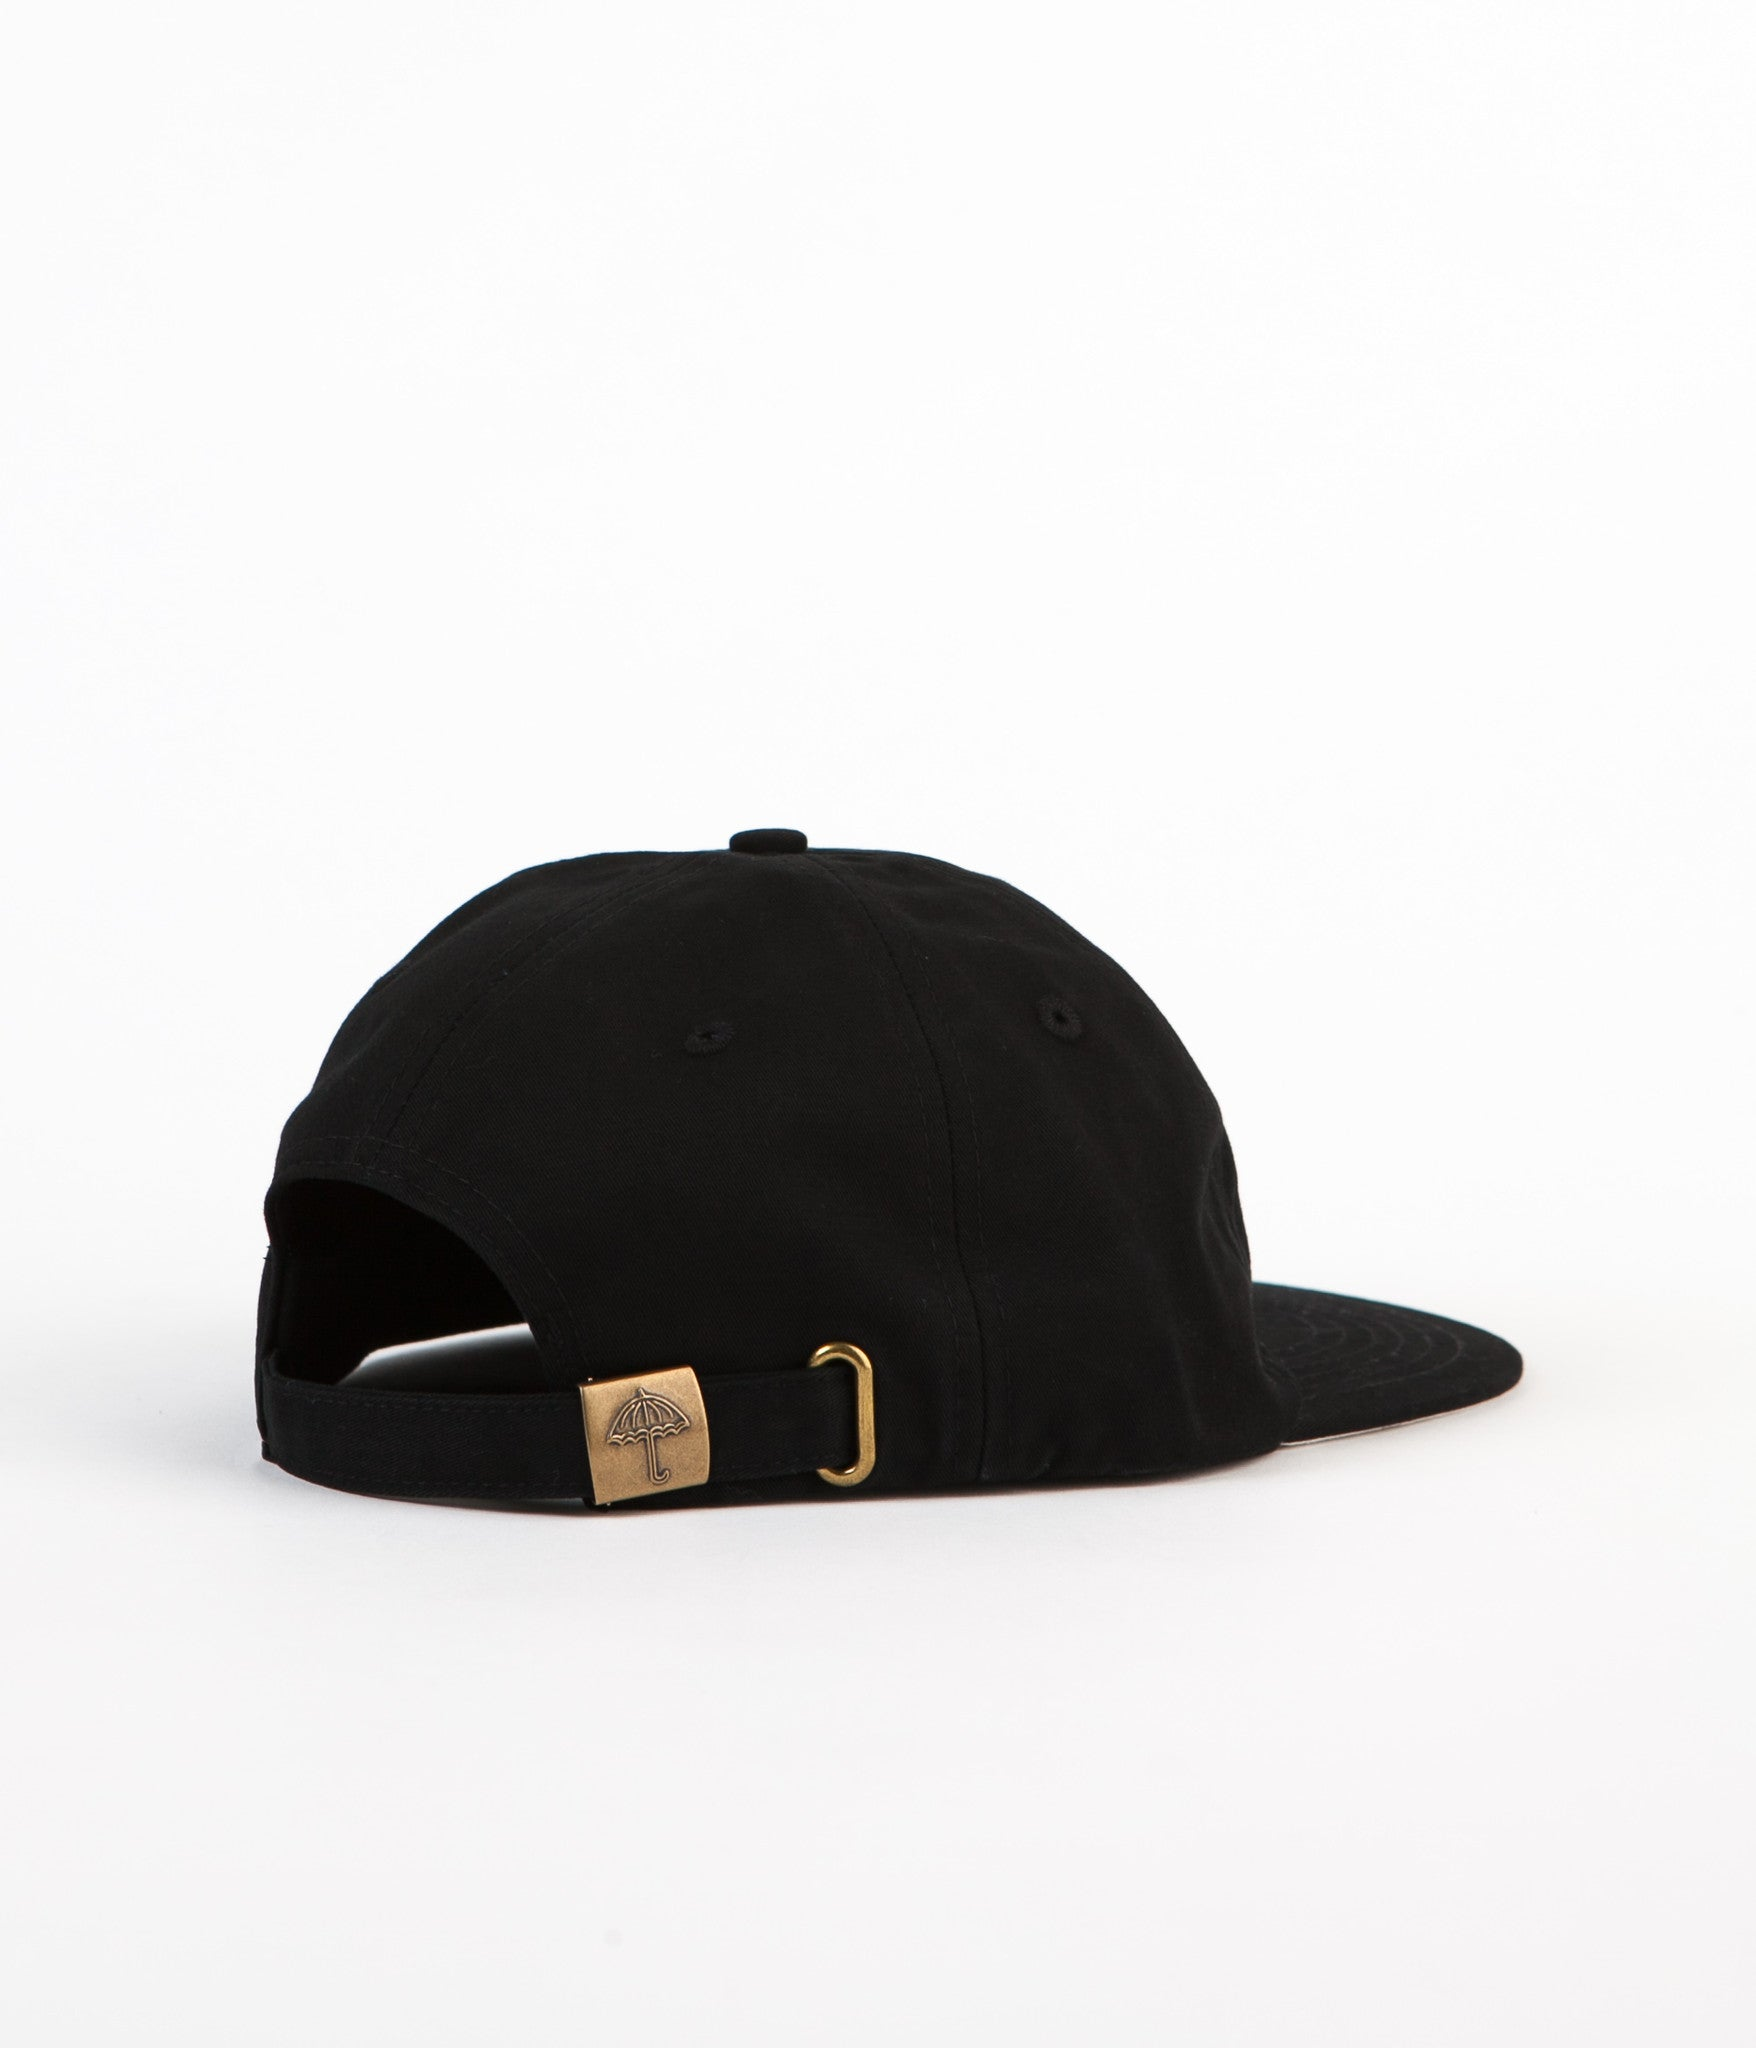 Helas Sporting Club Cap - Black